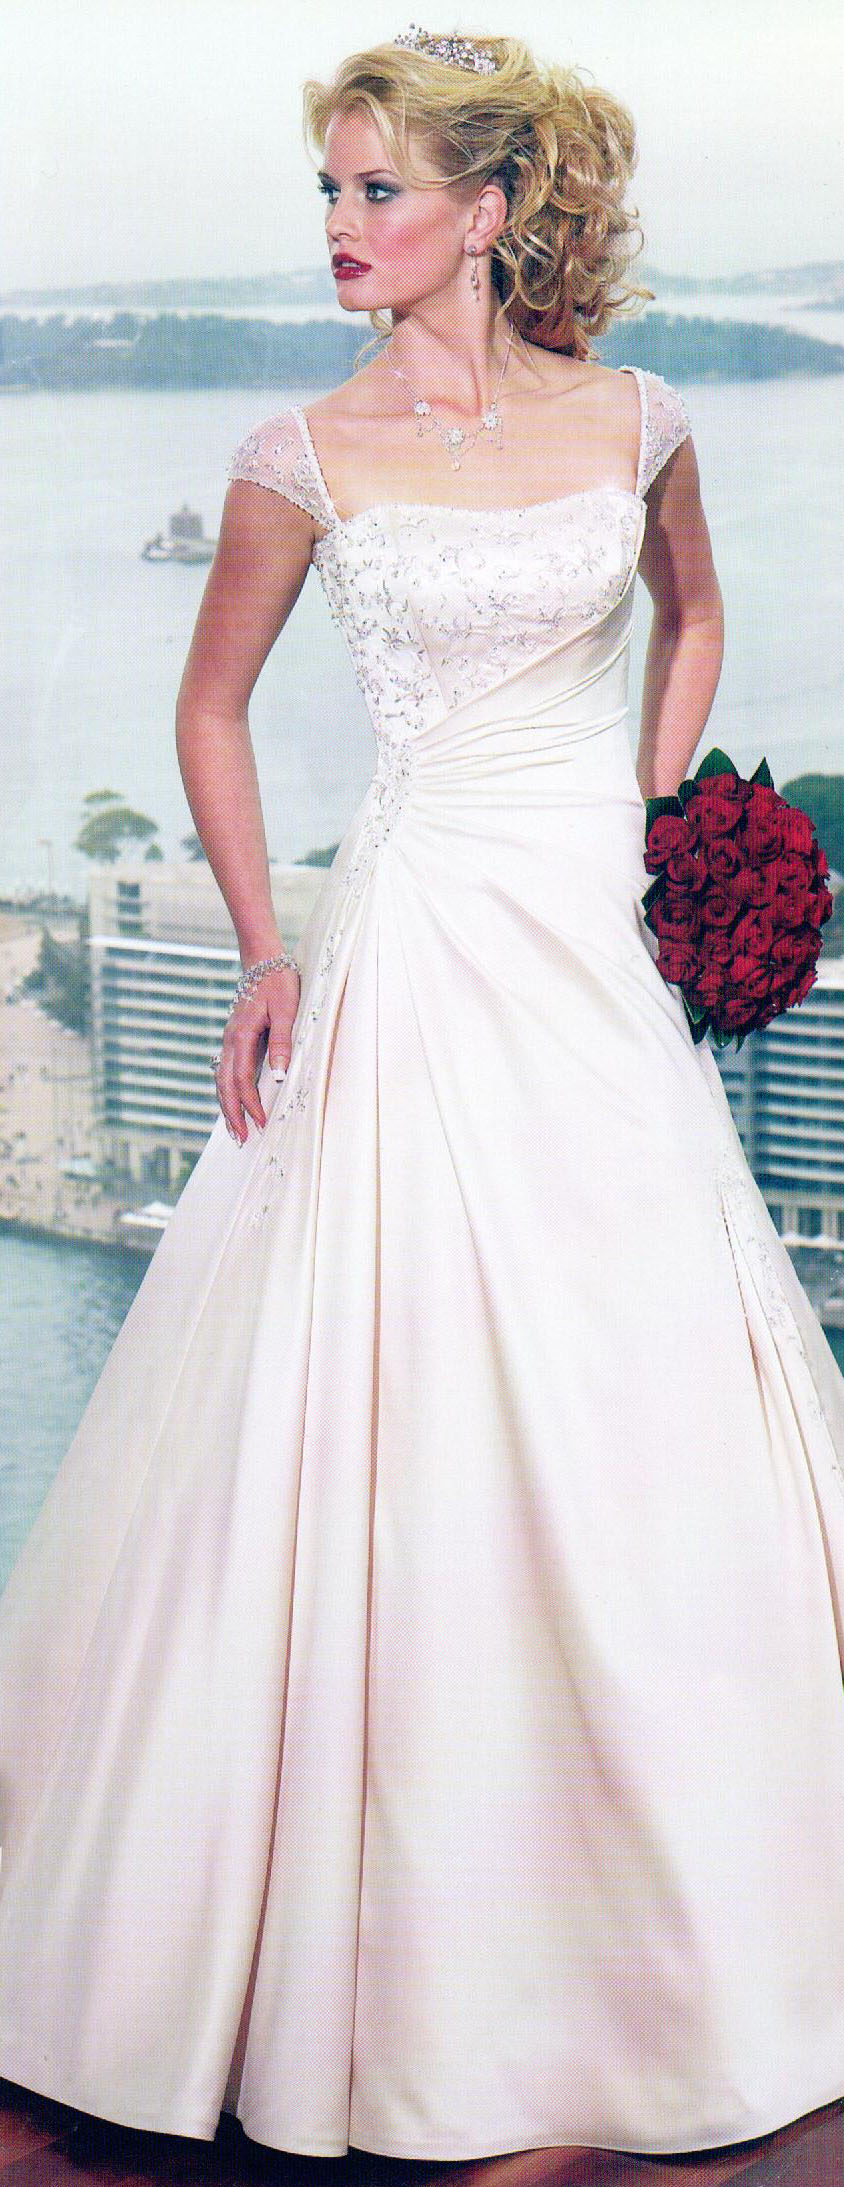 Discount Wedding Dress Stores In Las Vegas - Junoir Bridesmaid Dresses